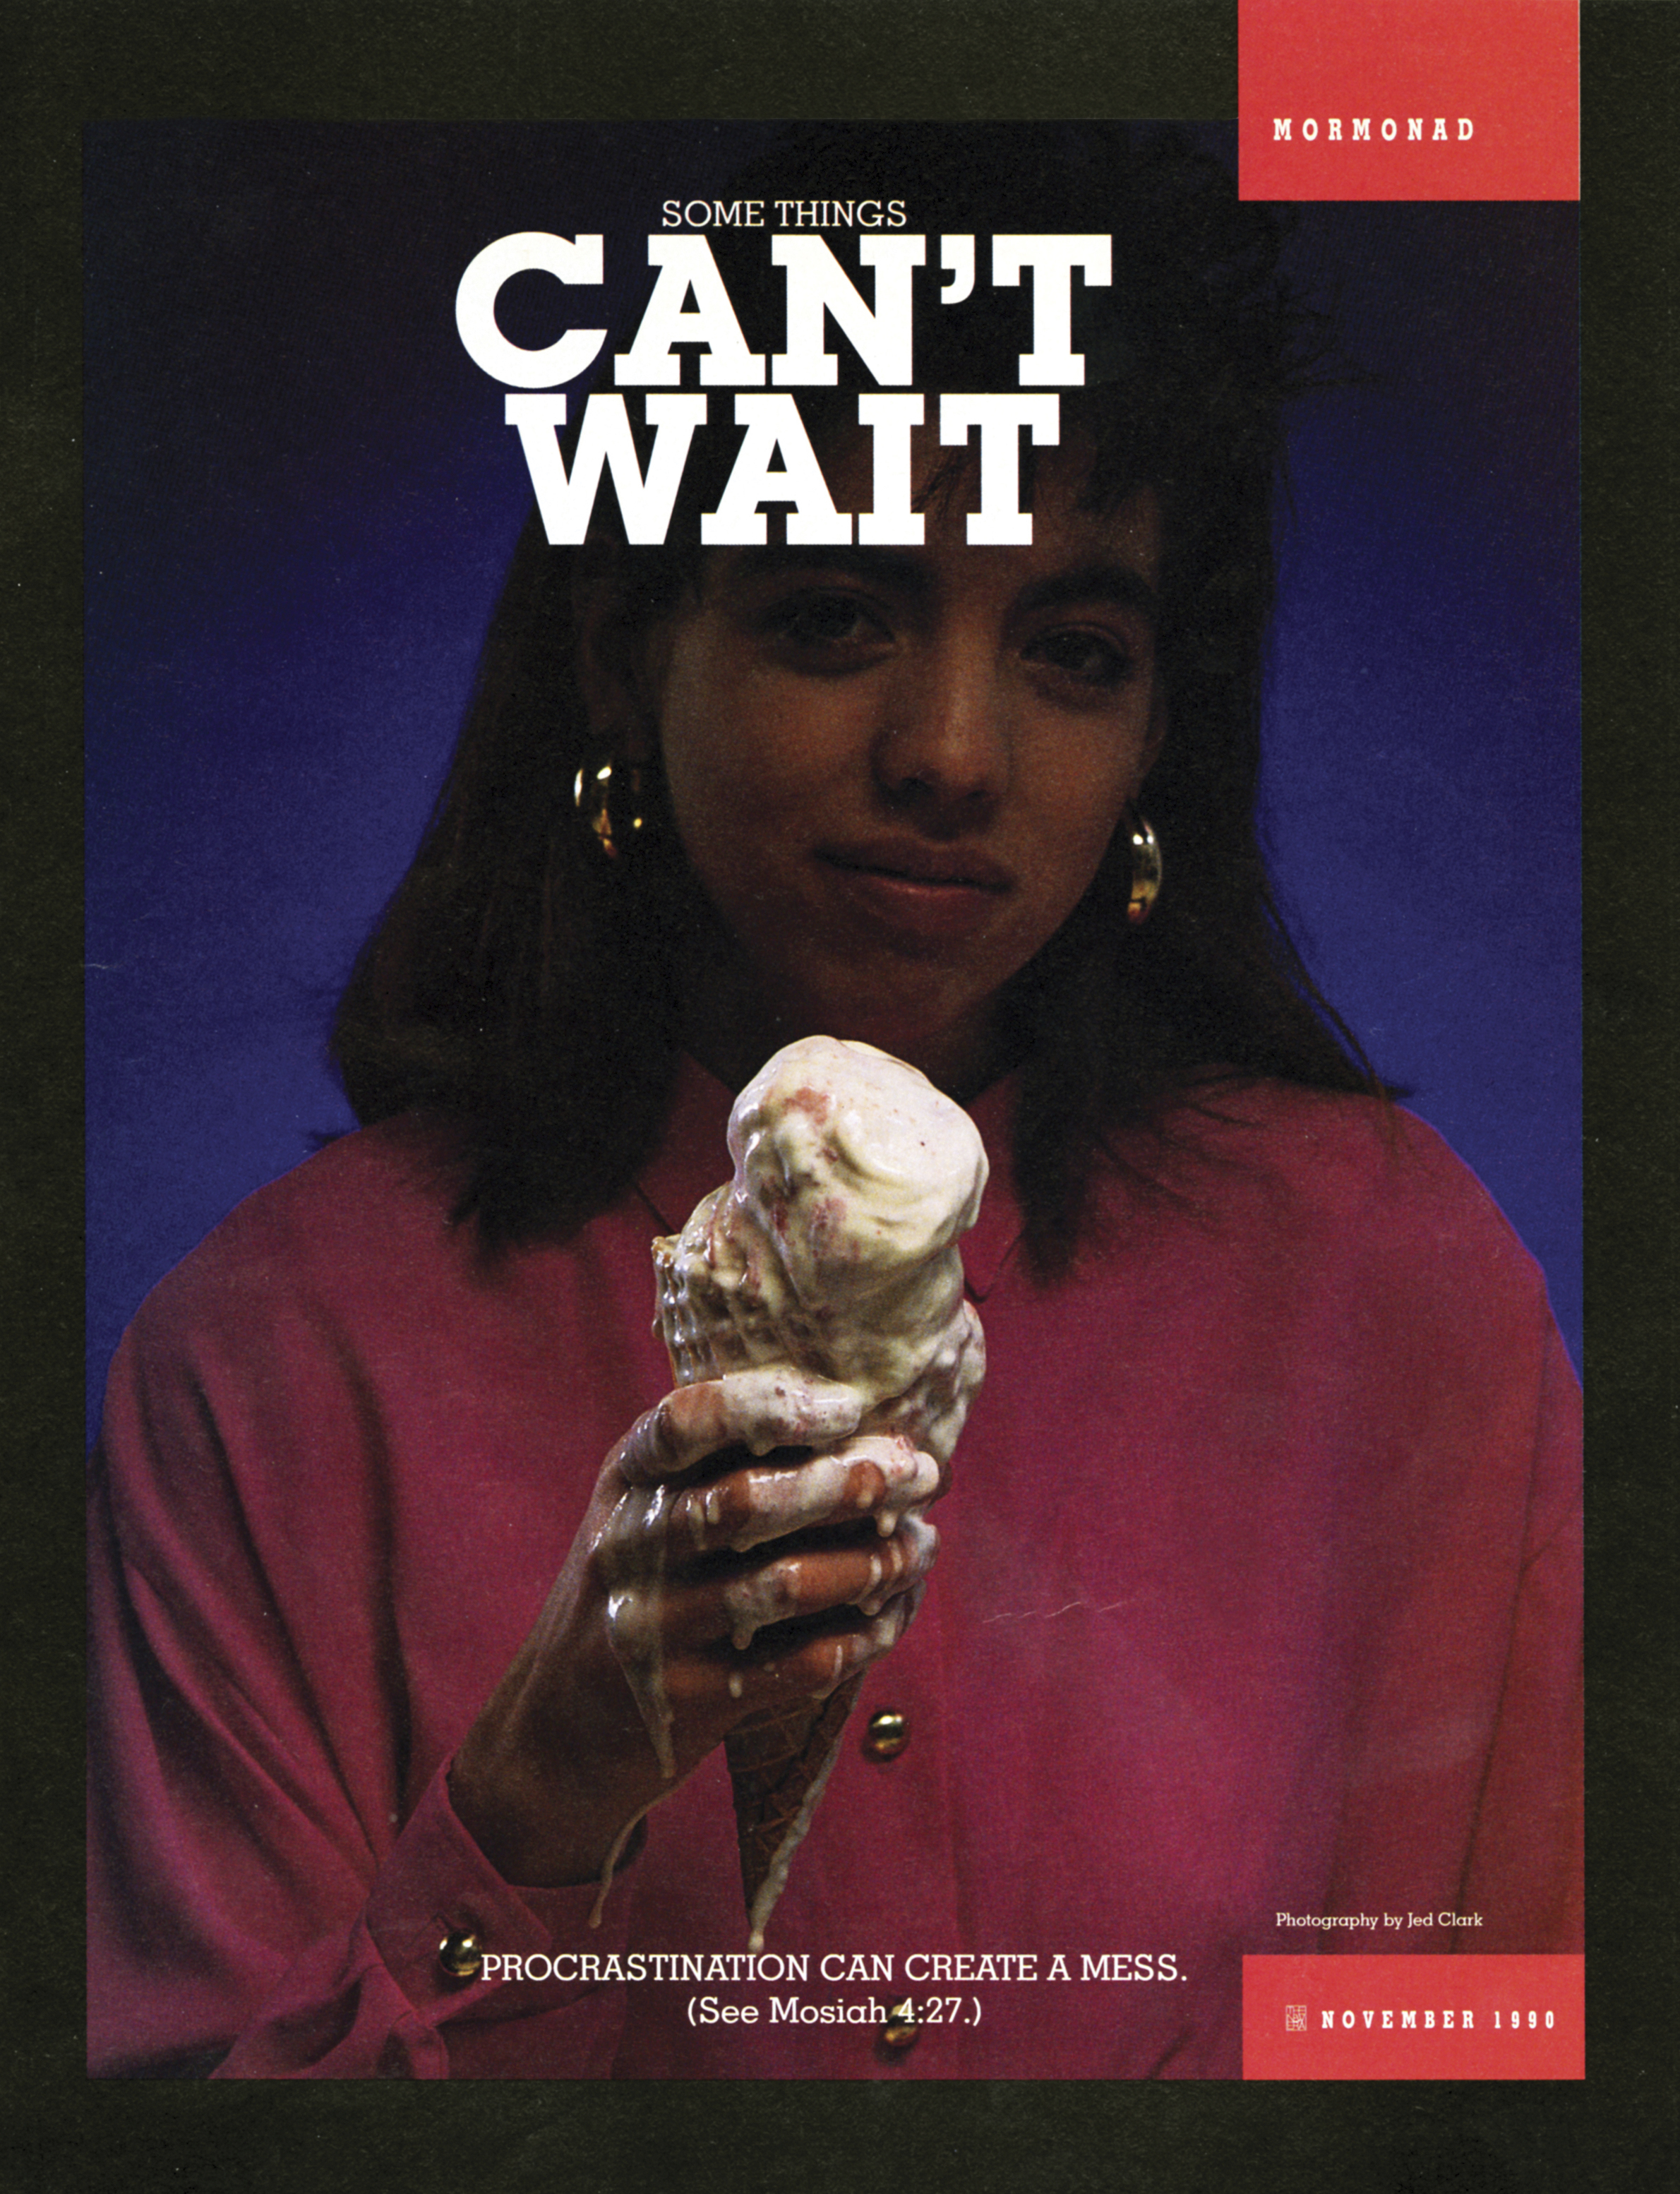 """A conceptual photograph of a young woman holding a melting ice cream cone, paired with the words """"Some Things can't Wait."""""""